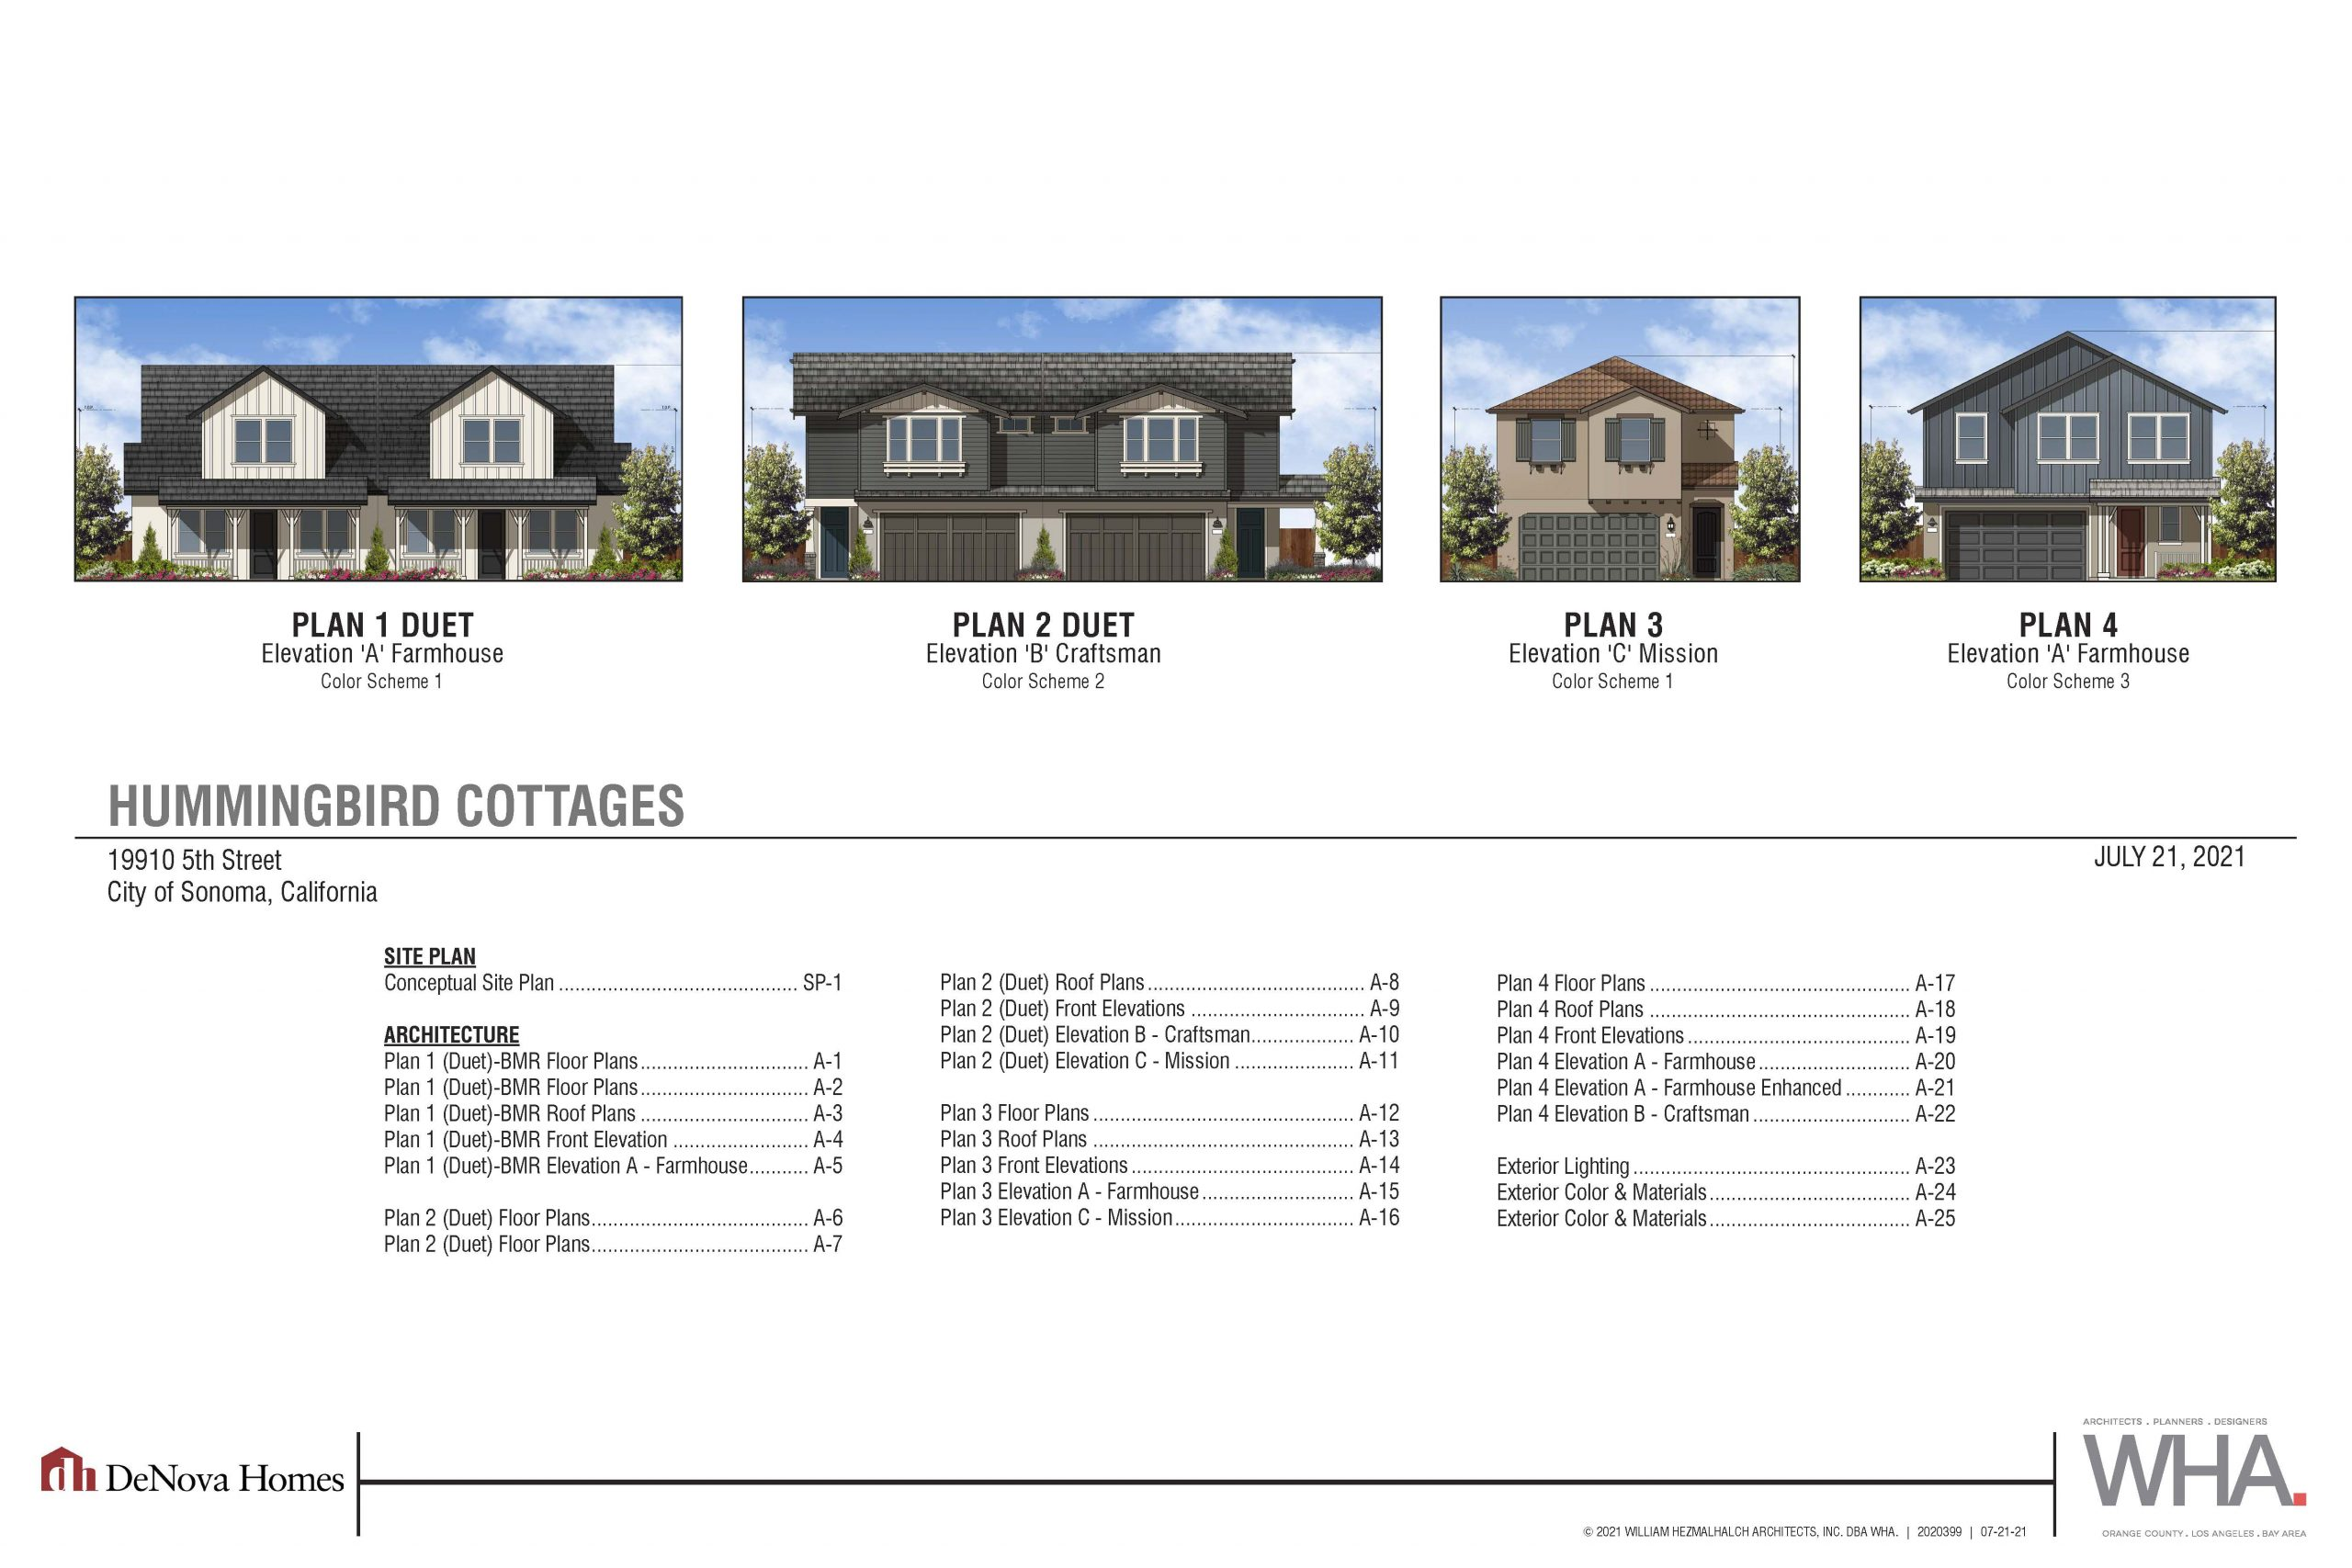 Picture of Hummingbird Cottages Plan Elevations